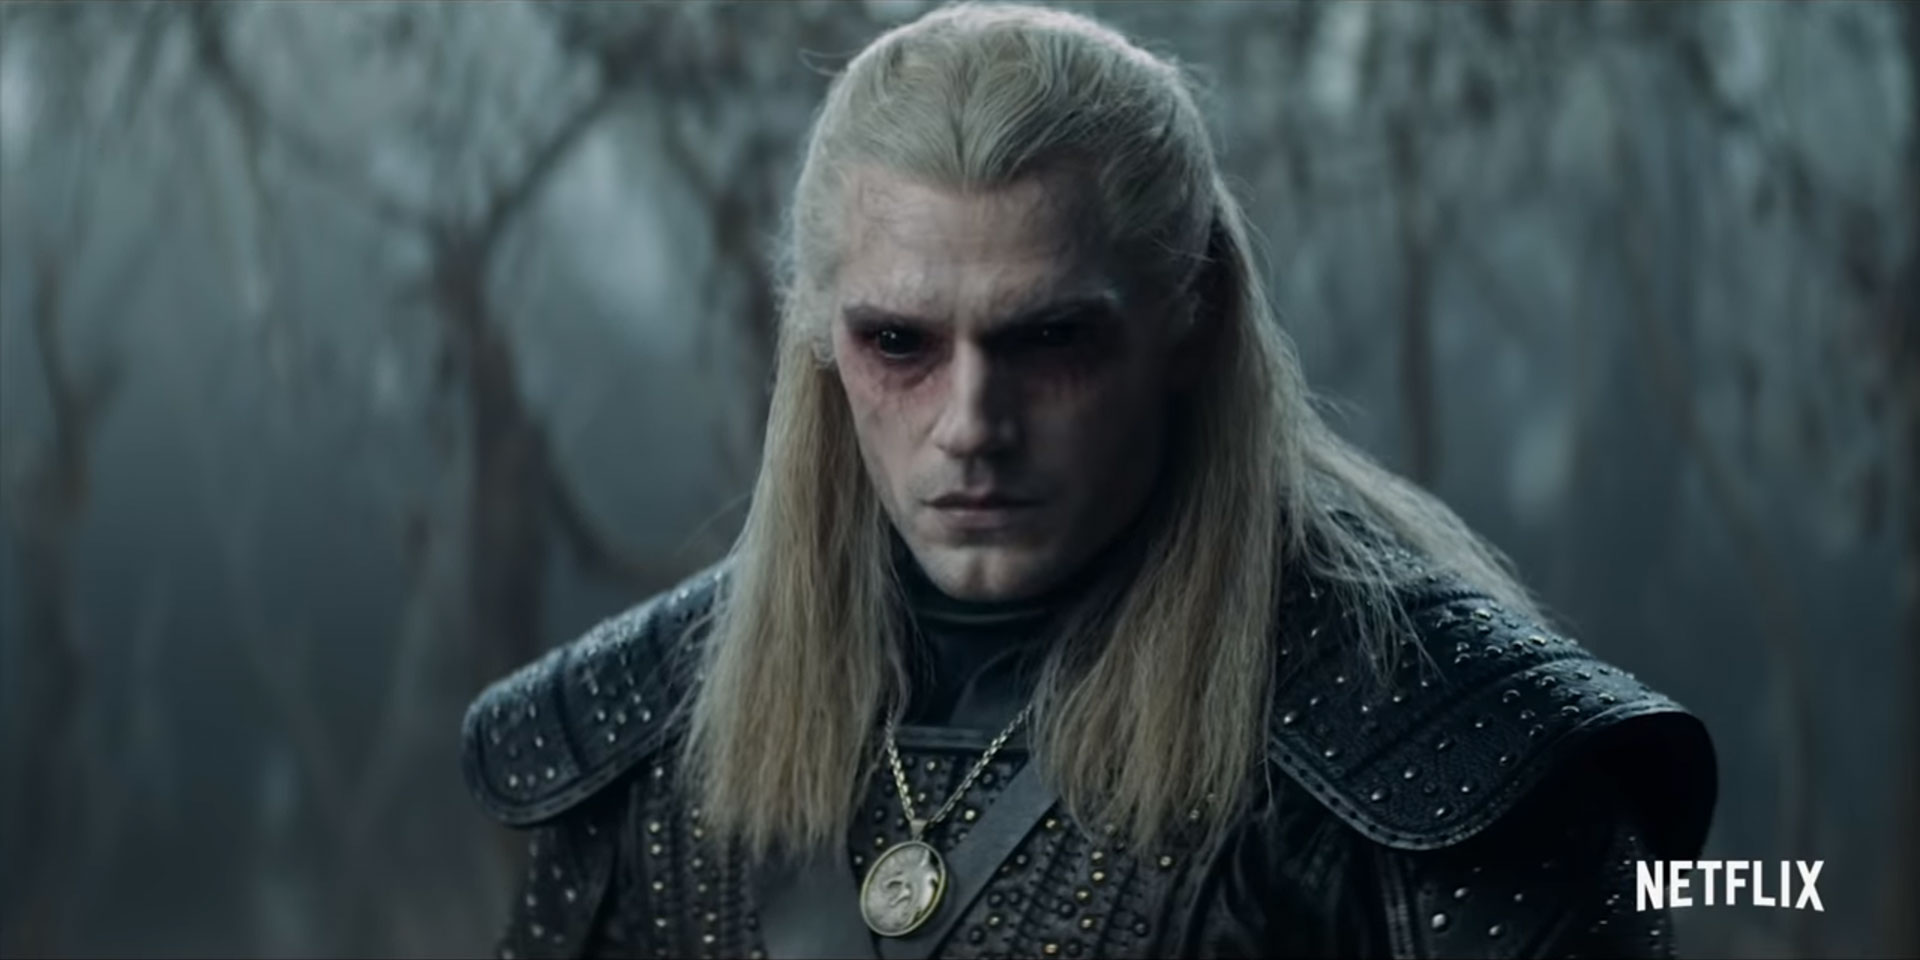 The Witcher Serie Trailer